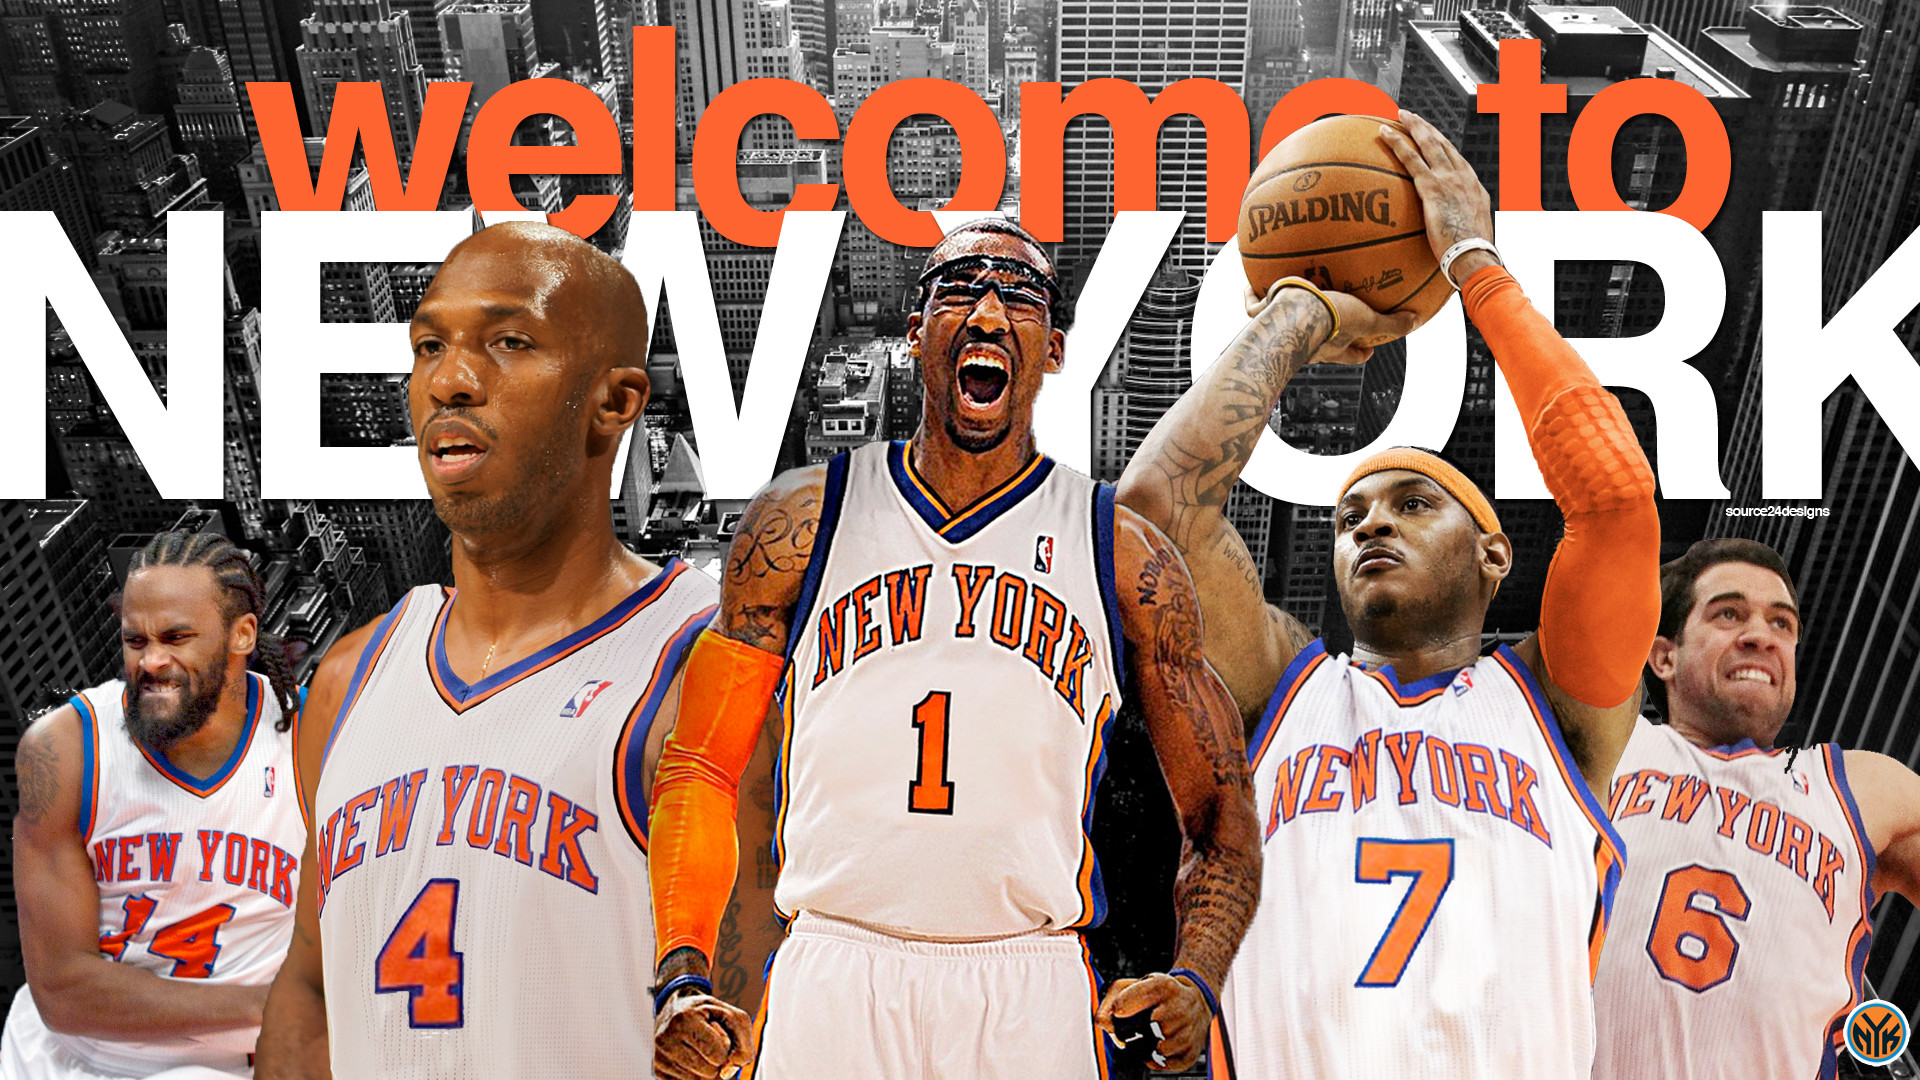 1920x1080 New York Knicks 2012 Team Wallpaper